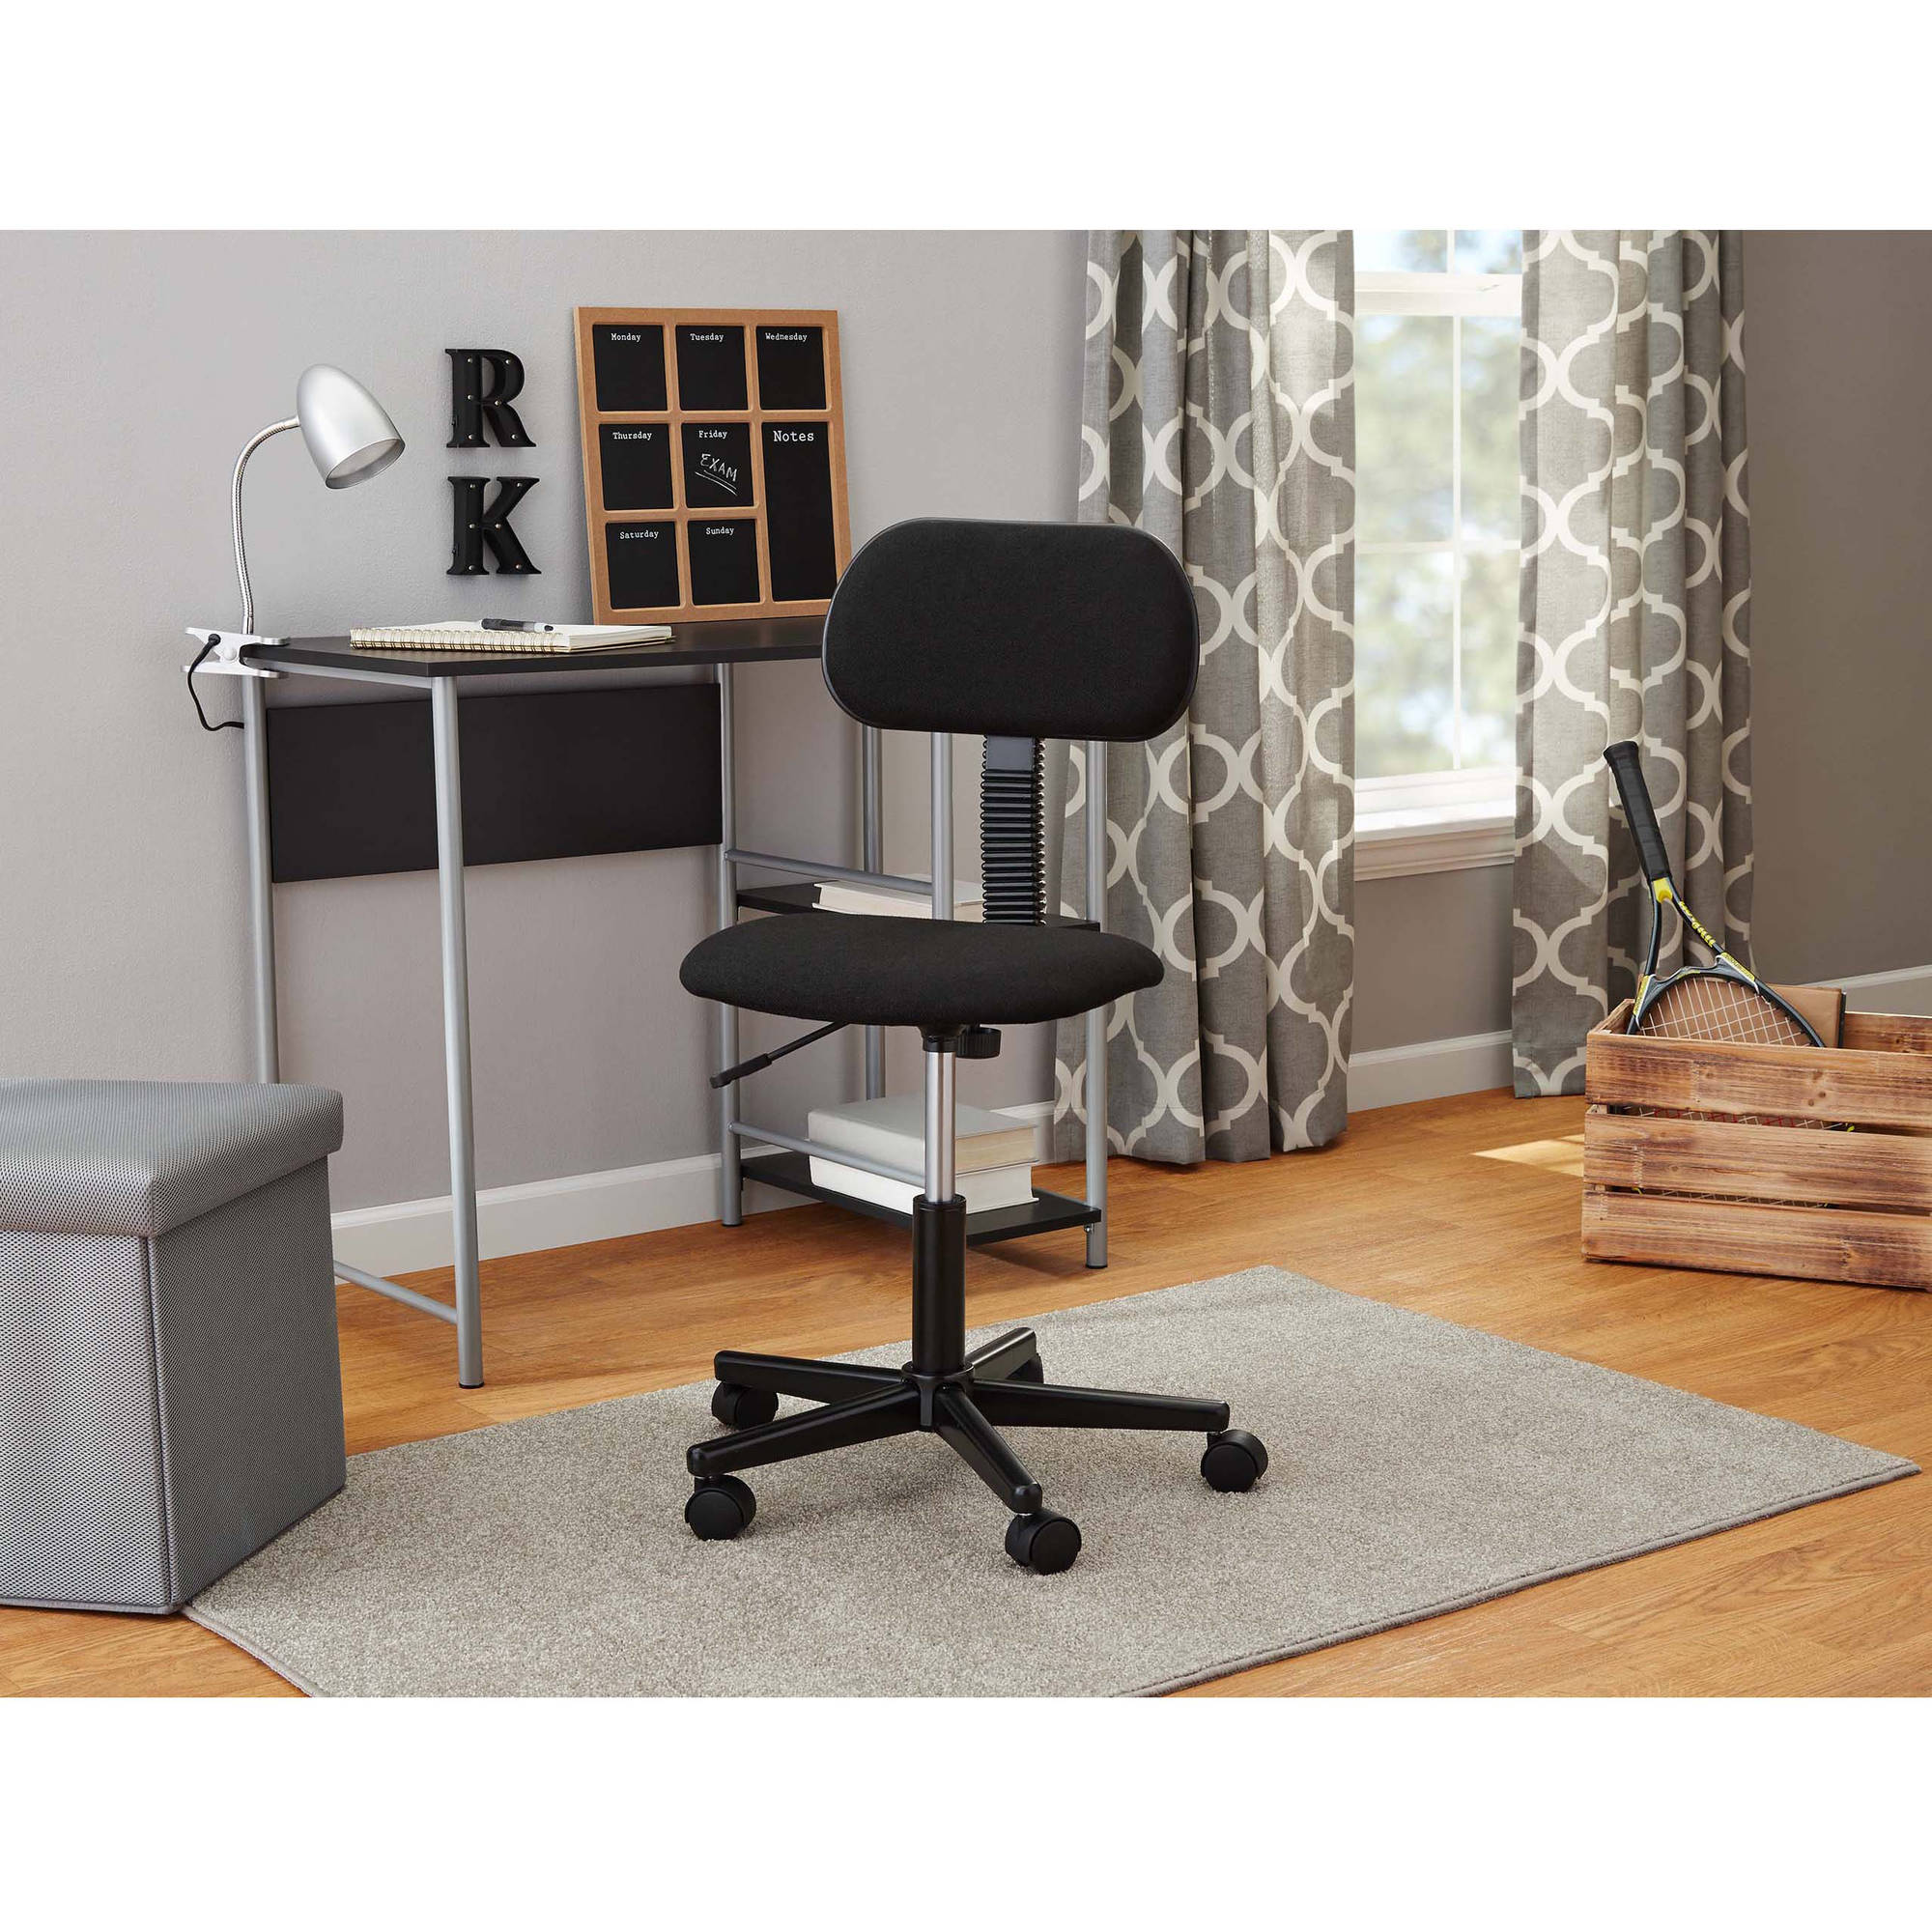 Uncategorized office desk chair casters - Uncategorized Office Desk Chair Casters 26